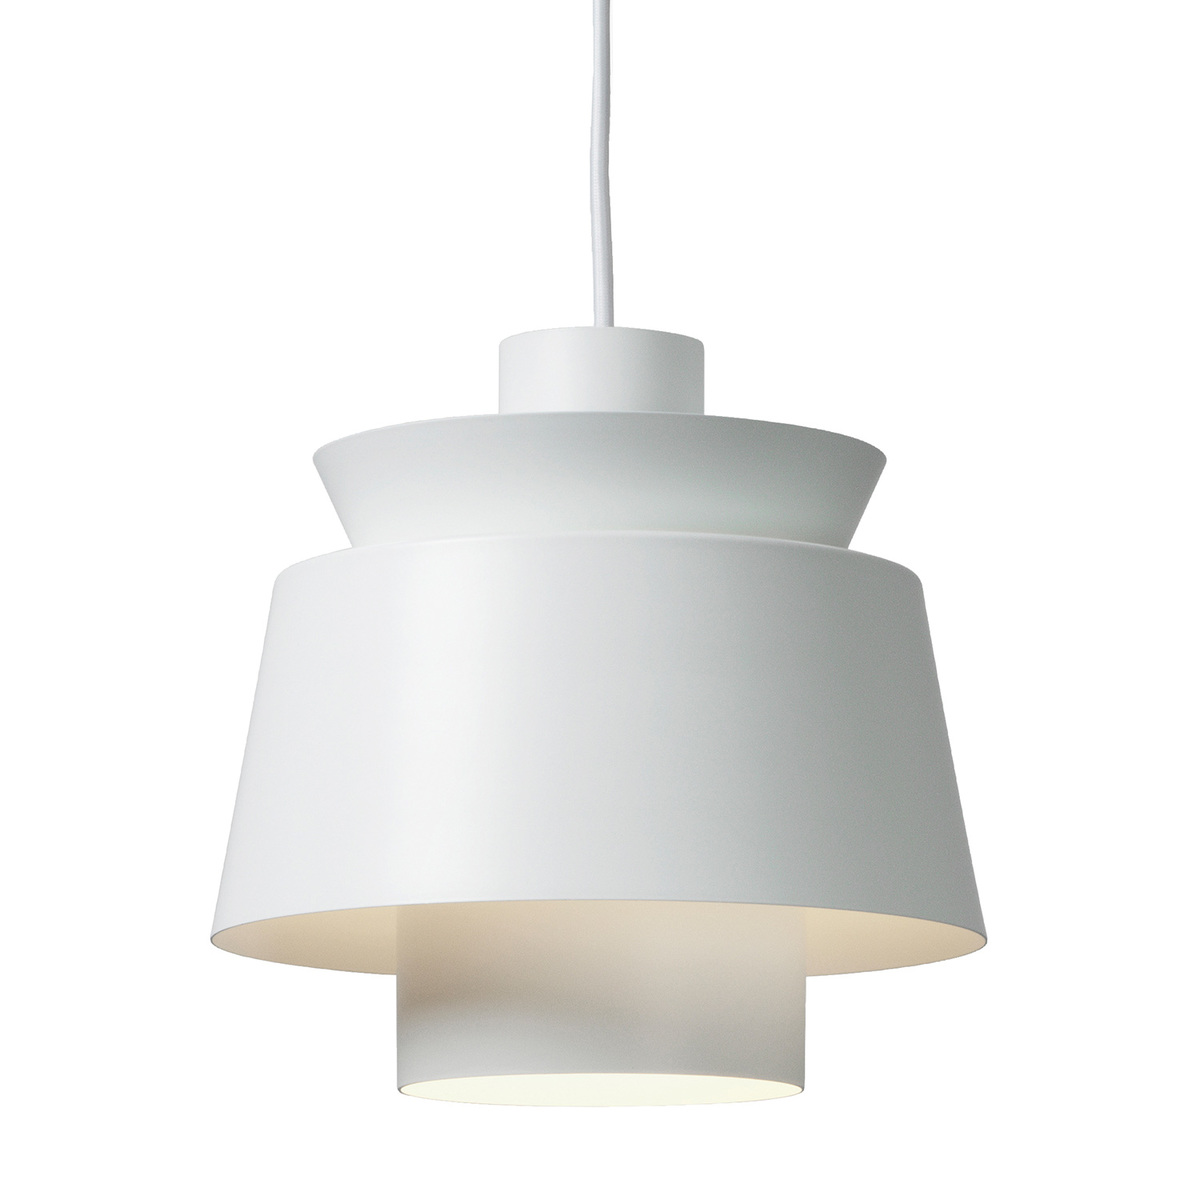 &Tradition Utzon JU1 pendant light, white from &Tradition